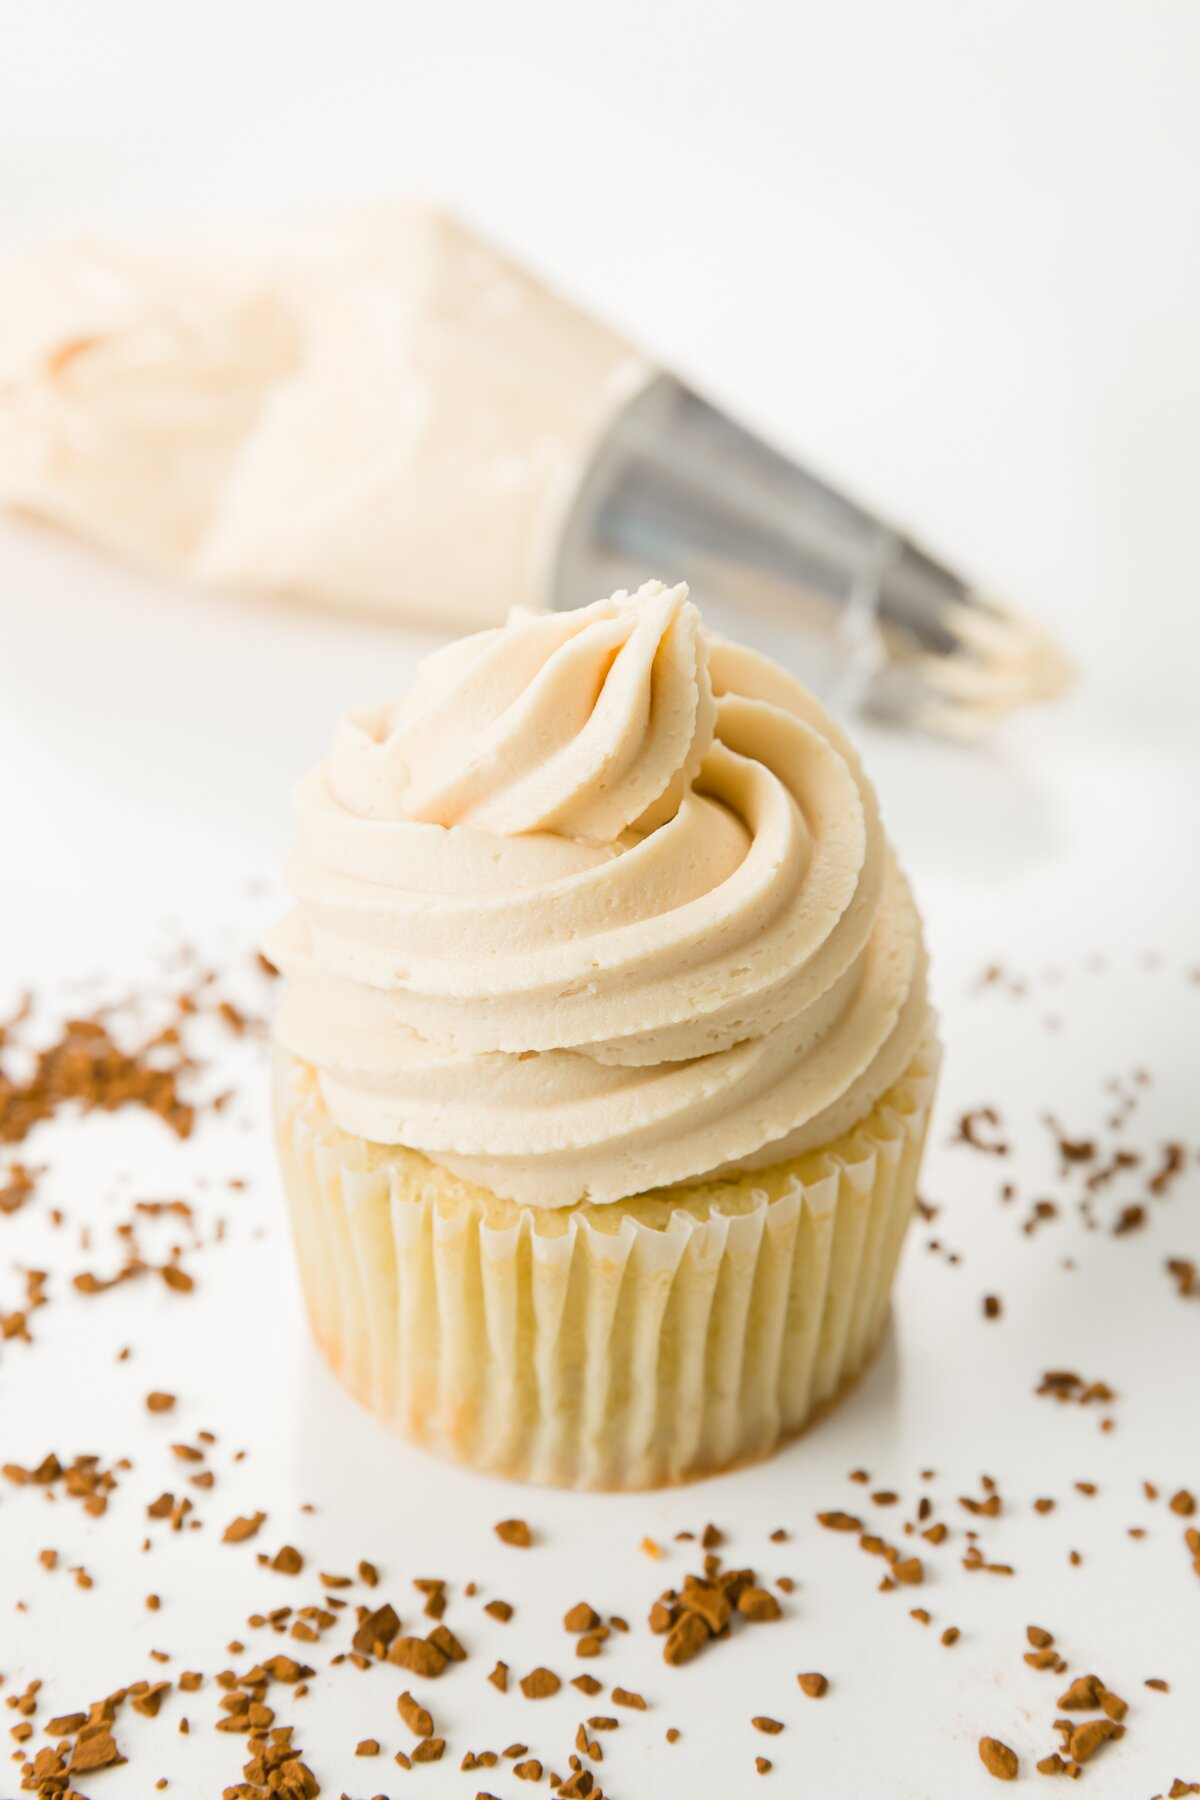 cupcake topped with coffee frosting and a piping bag in the background